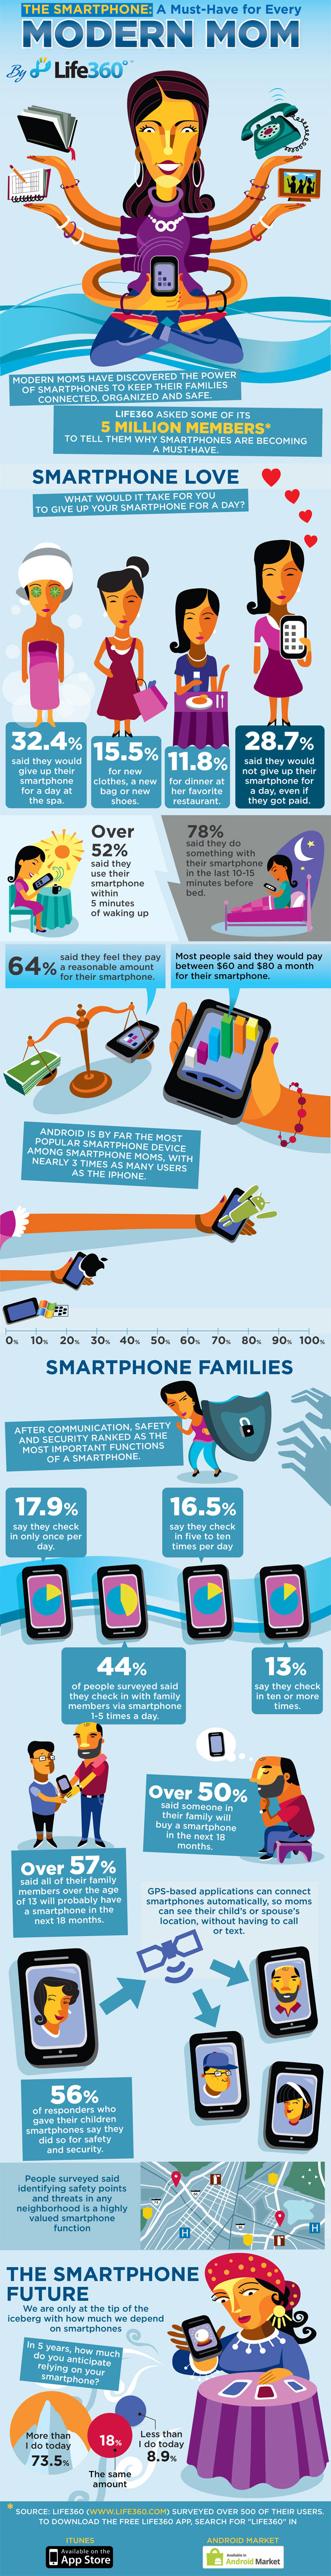 The Smartphone: A Must-Have For Modern Moms